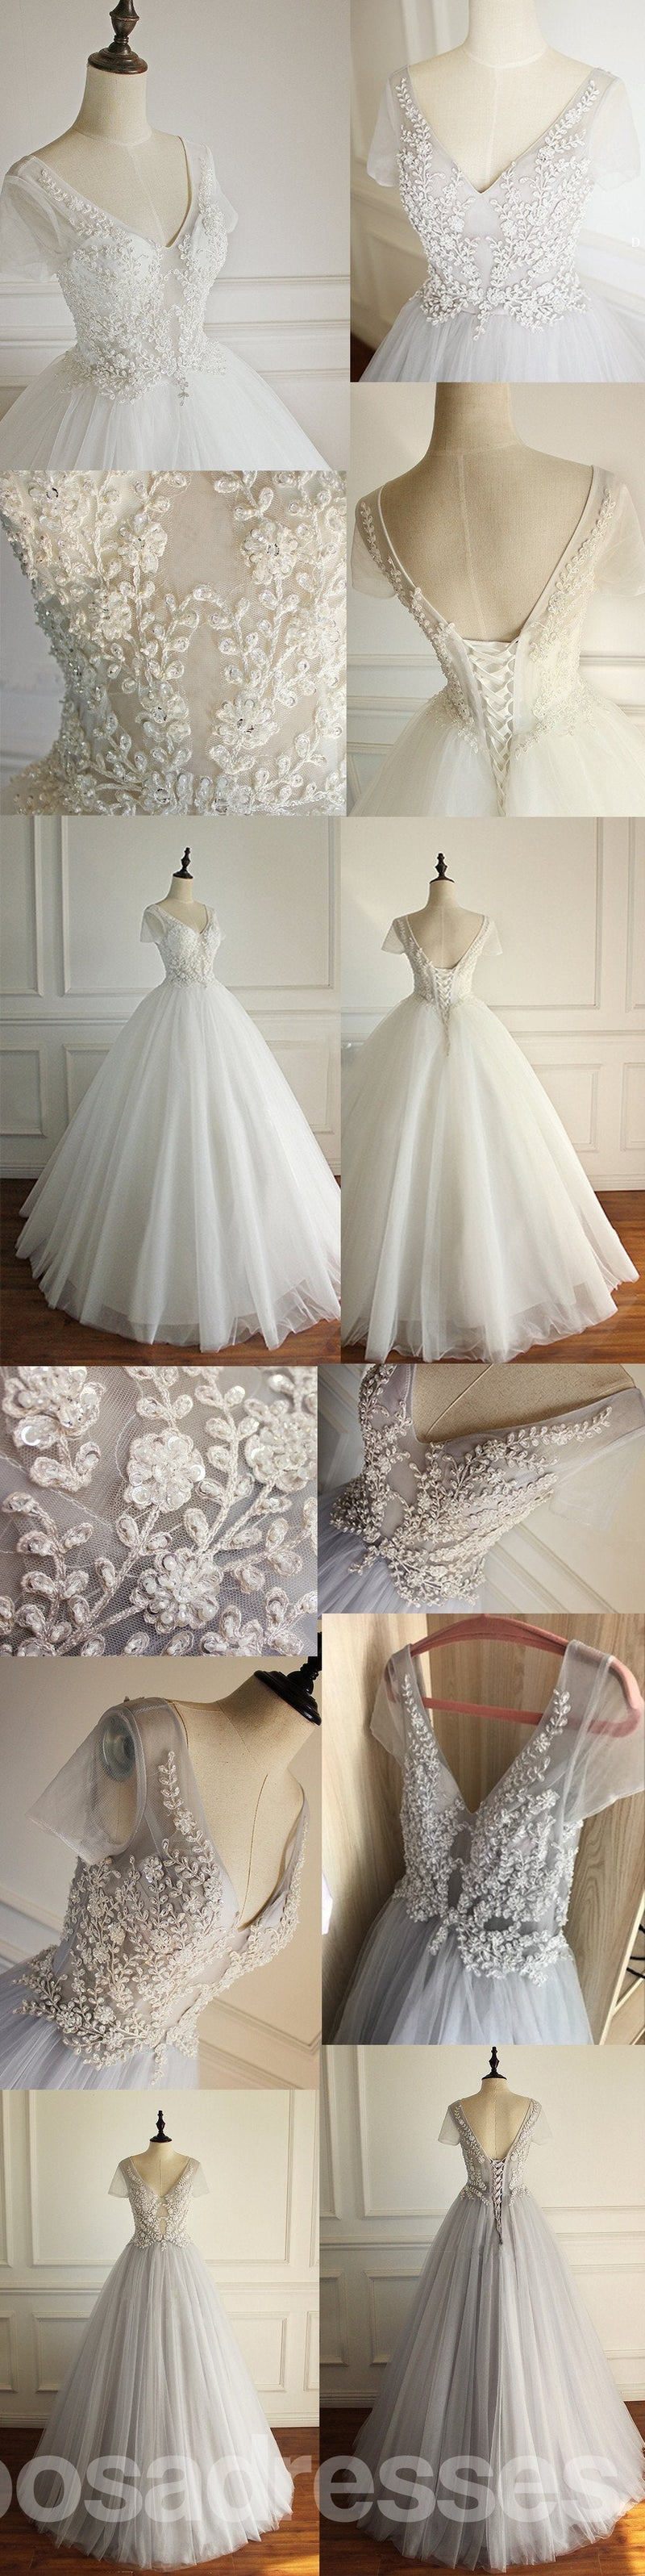 Short Sleeve See Through A Line Lace Wedding Bridal Dresses, Custom Made Wedding Dresses, Affordable Wedding Bridal Gowns, WD232